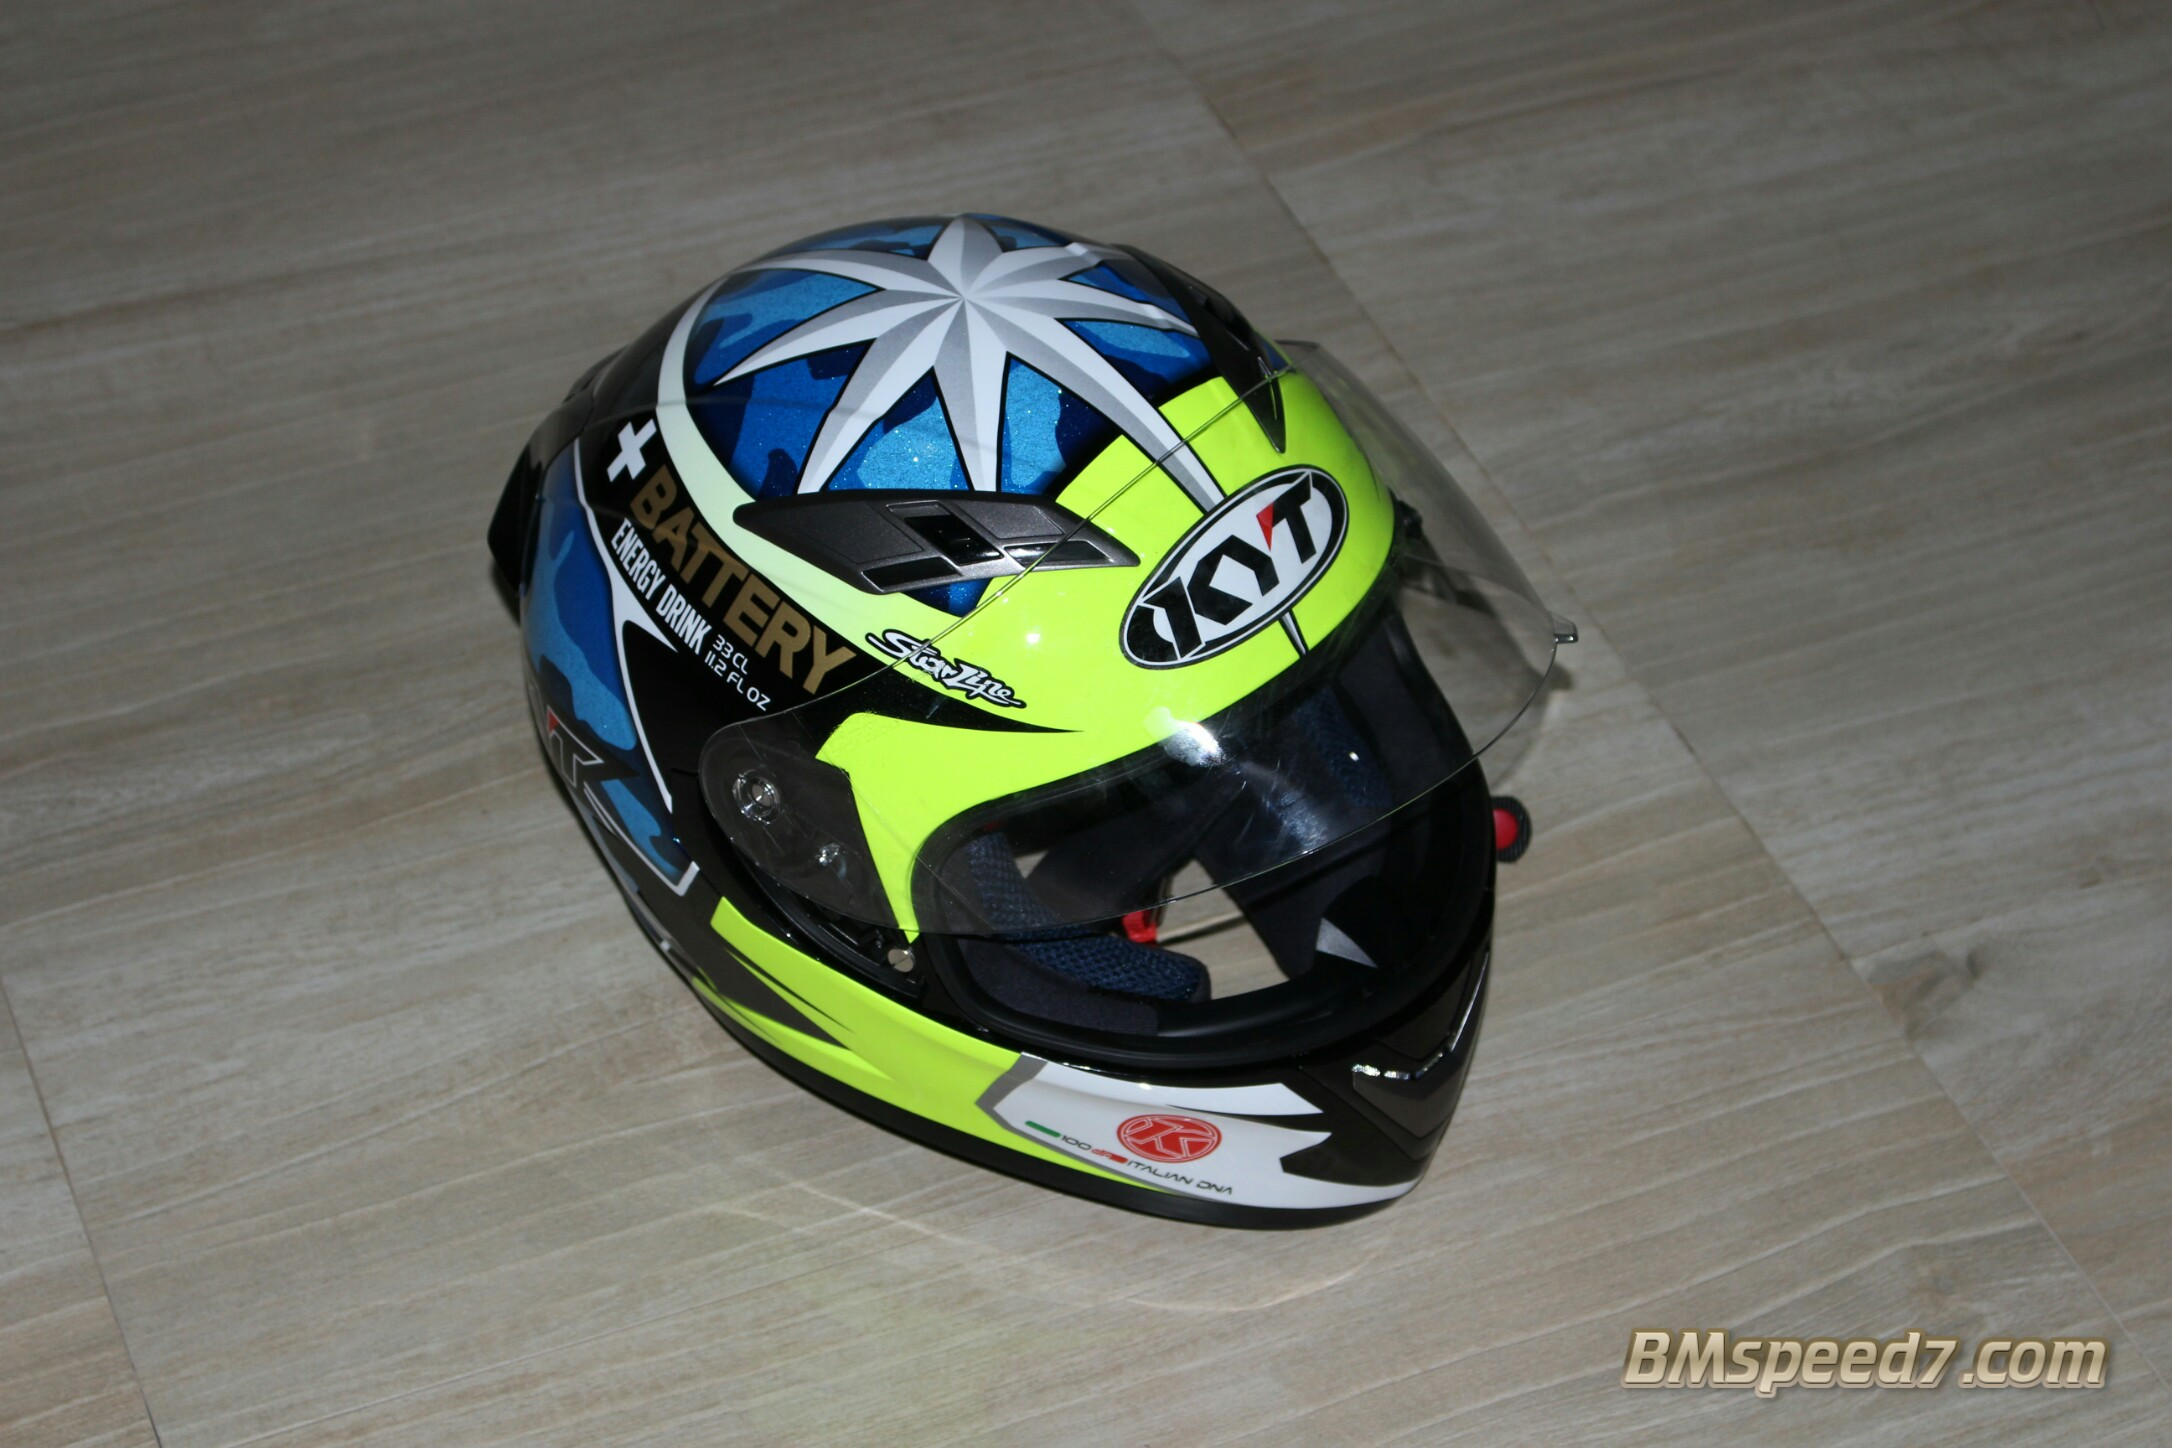 review-kyt-vendetta-2-replika-aleix-espargaro-bmspeed7.com_5.jpg